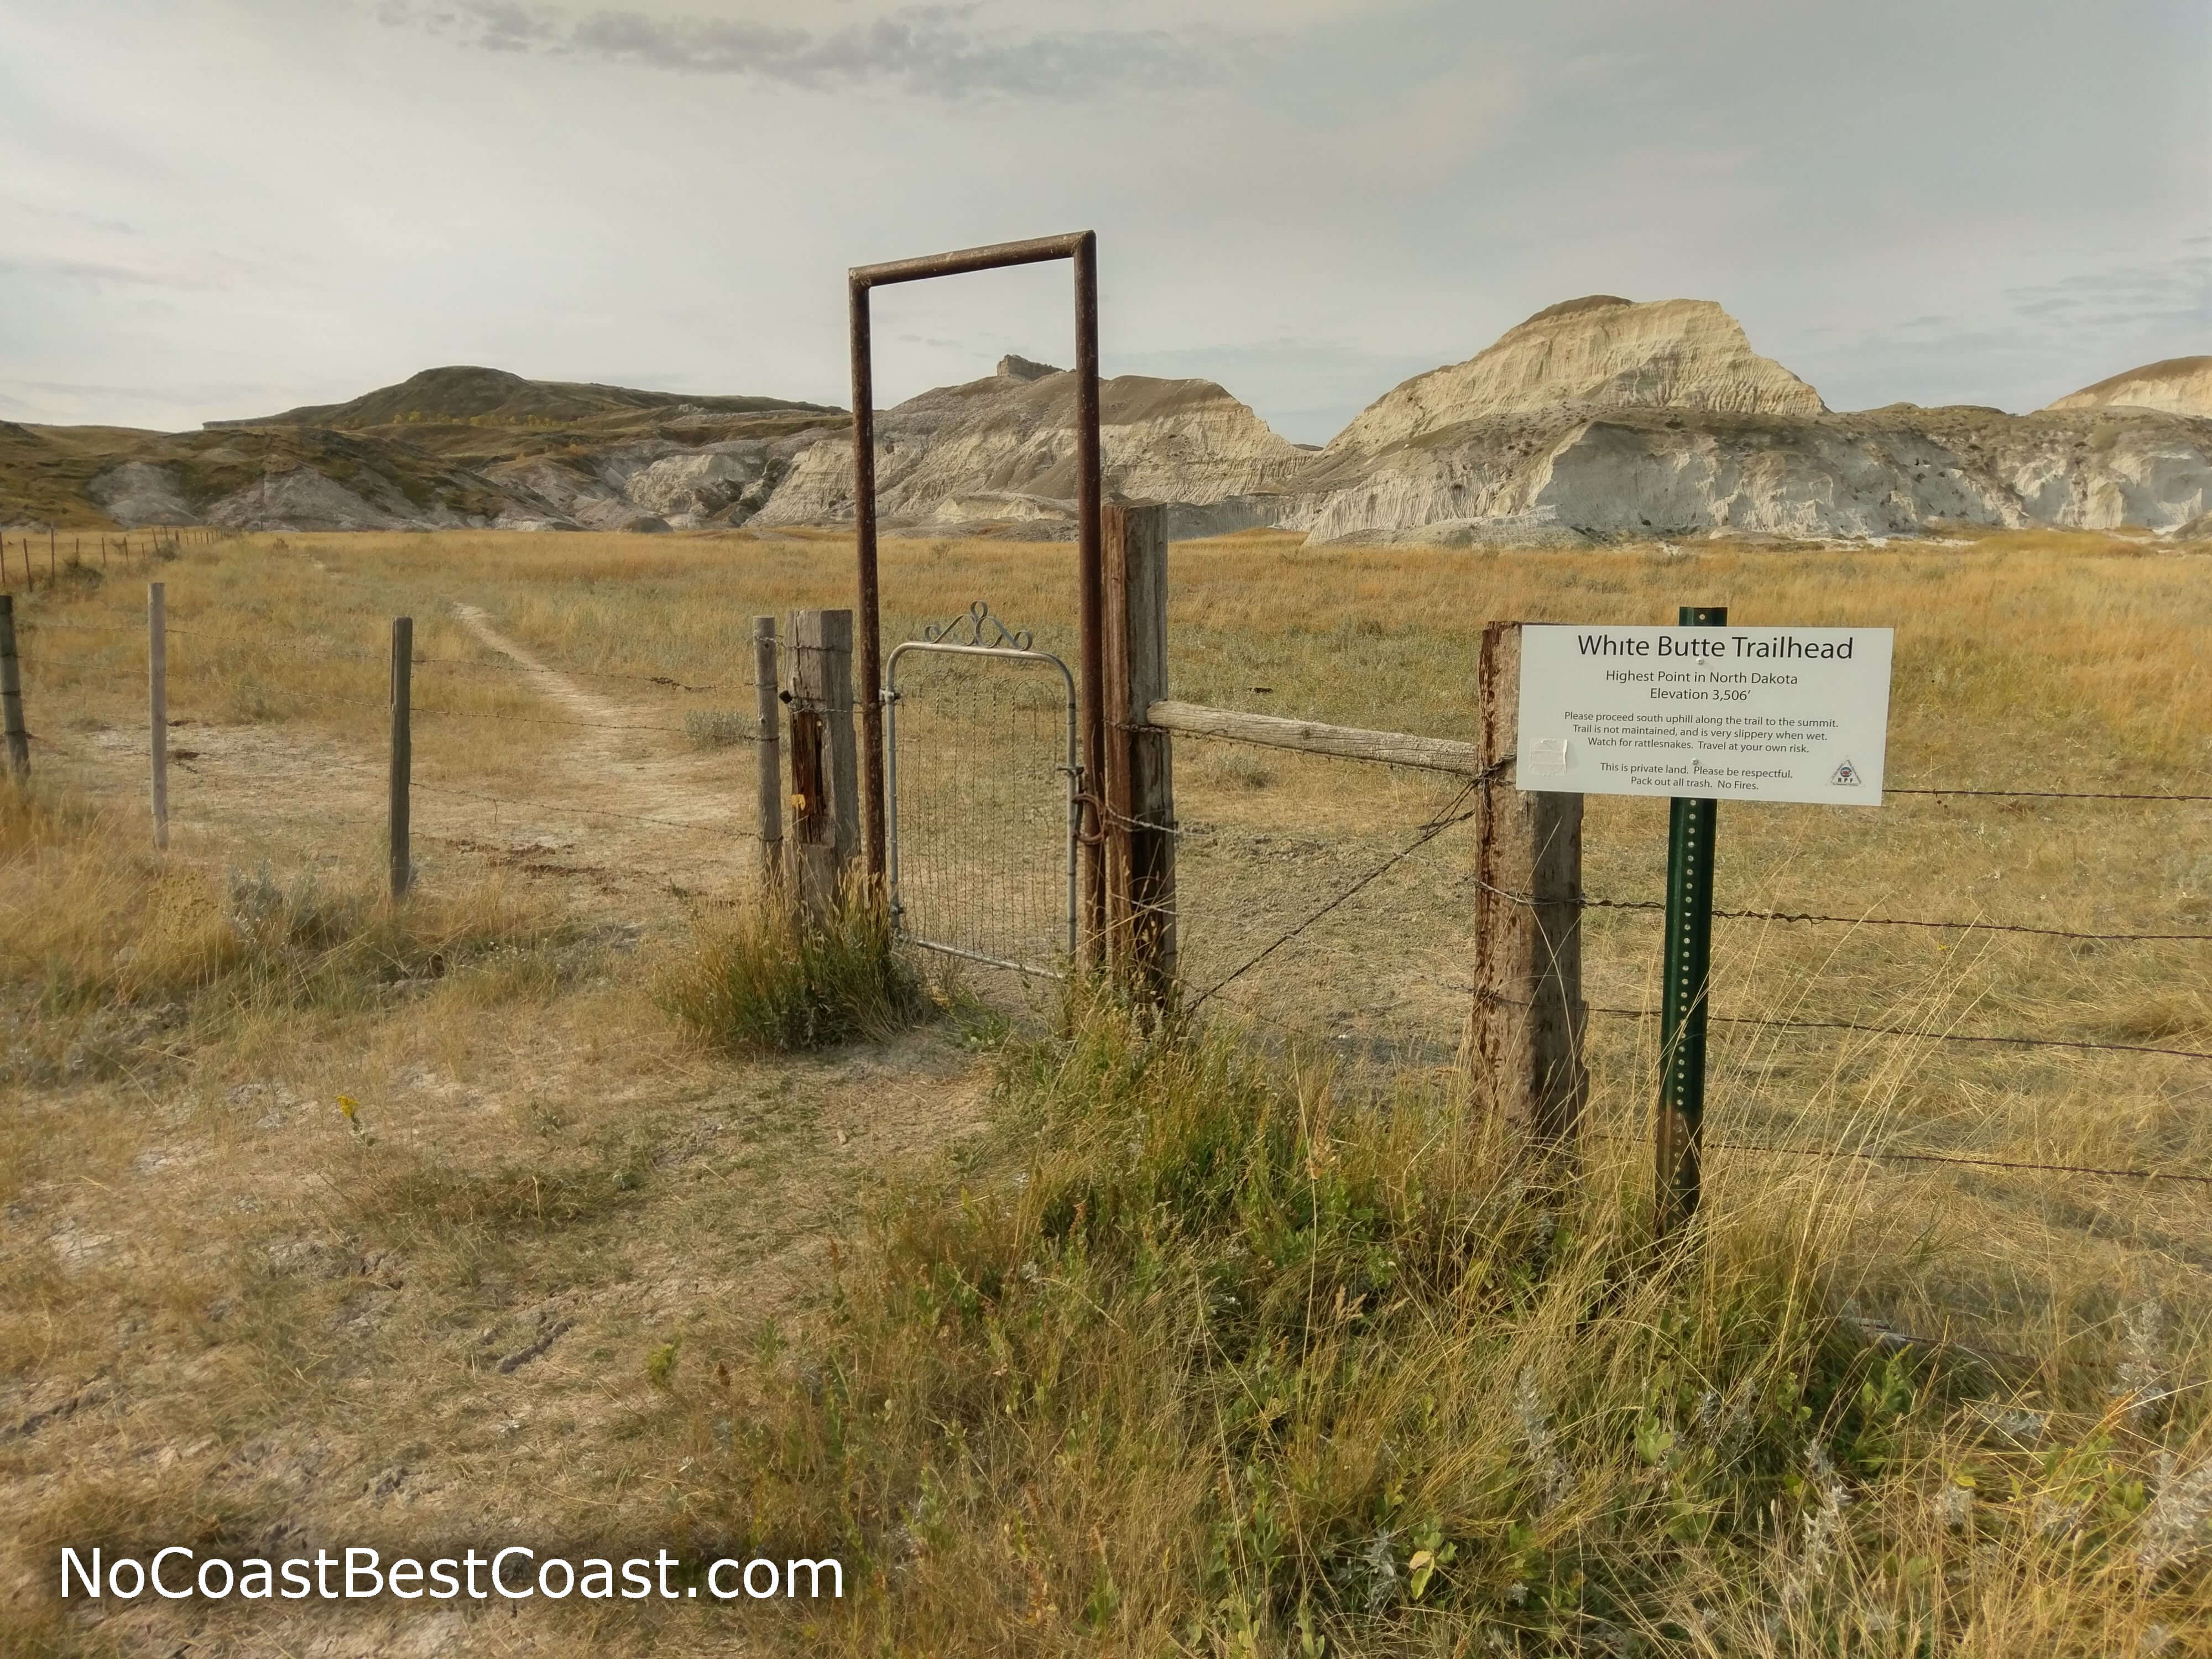 The entrance gate to the trail to White Butte